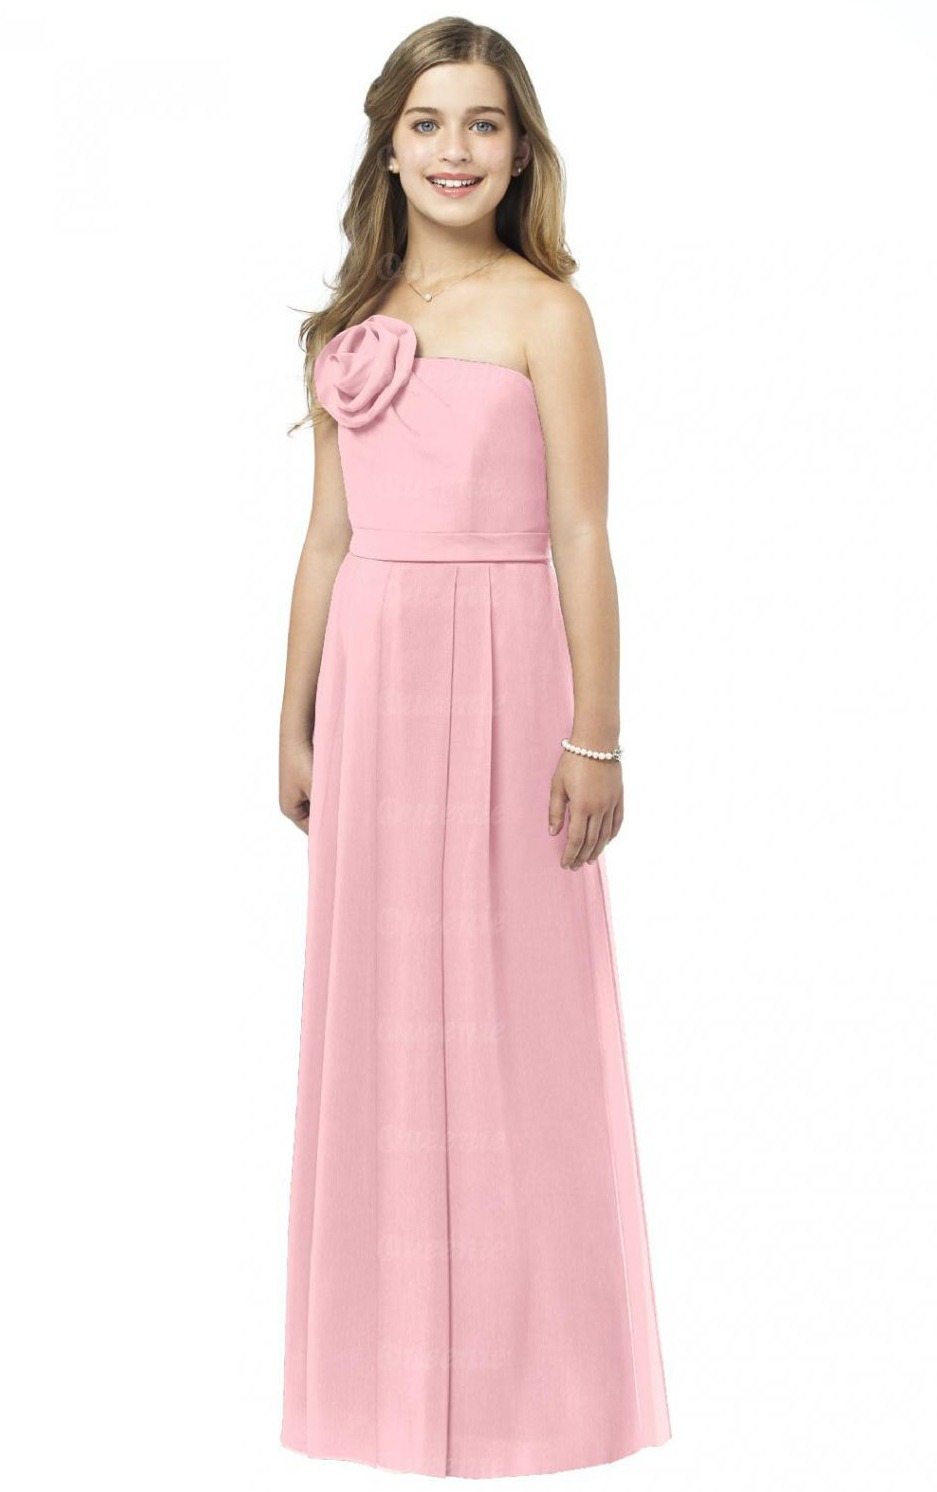 Sleeveless A-line Natural Floor-length Strapless Bridesmaid Dresses